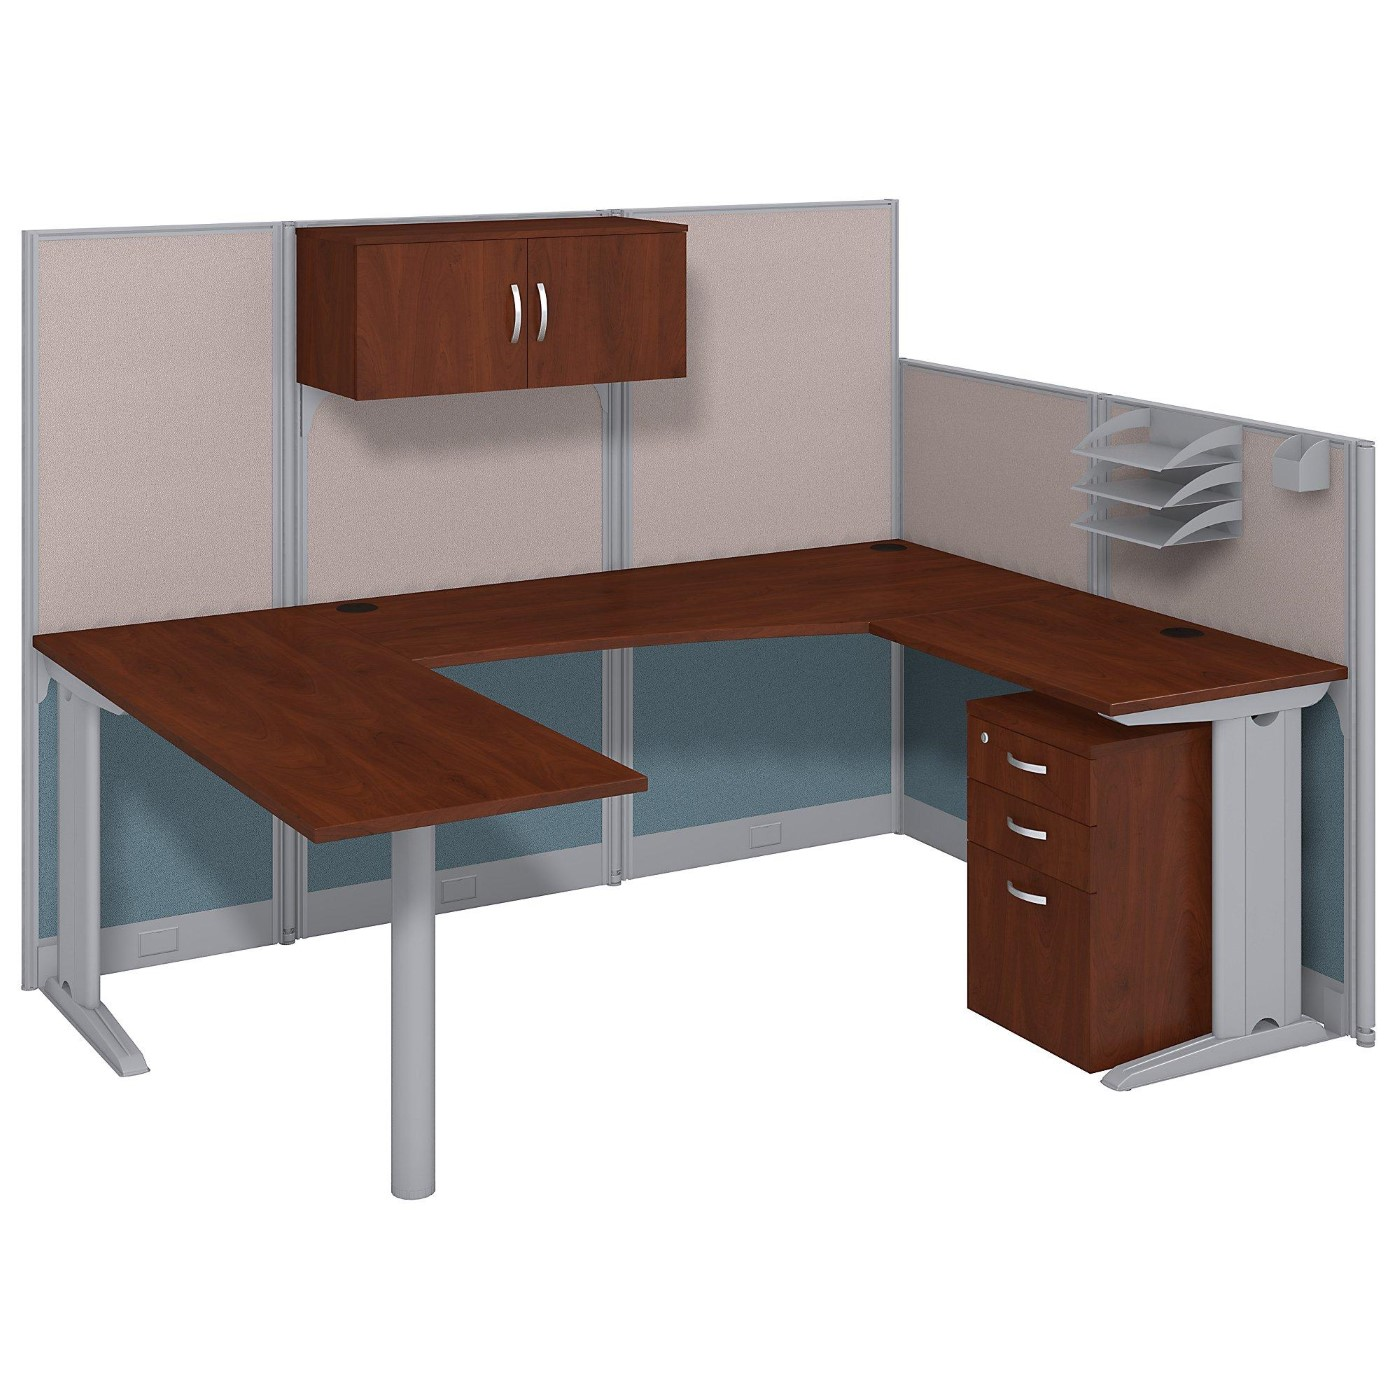 <font color=#c60><b>BUSH BUSINESS FURNITURE OFFICE IN AN HOUR 89W X 65D U SHAPED CUBICLE WORKSTATION WITH STORAGE. FREE SHIPPING</font></b>